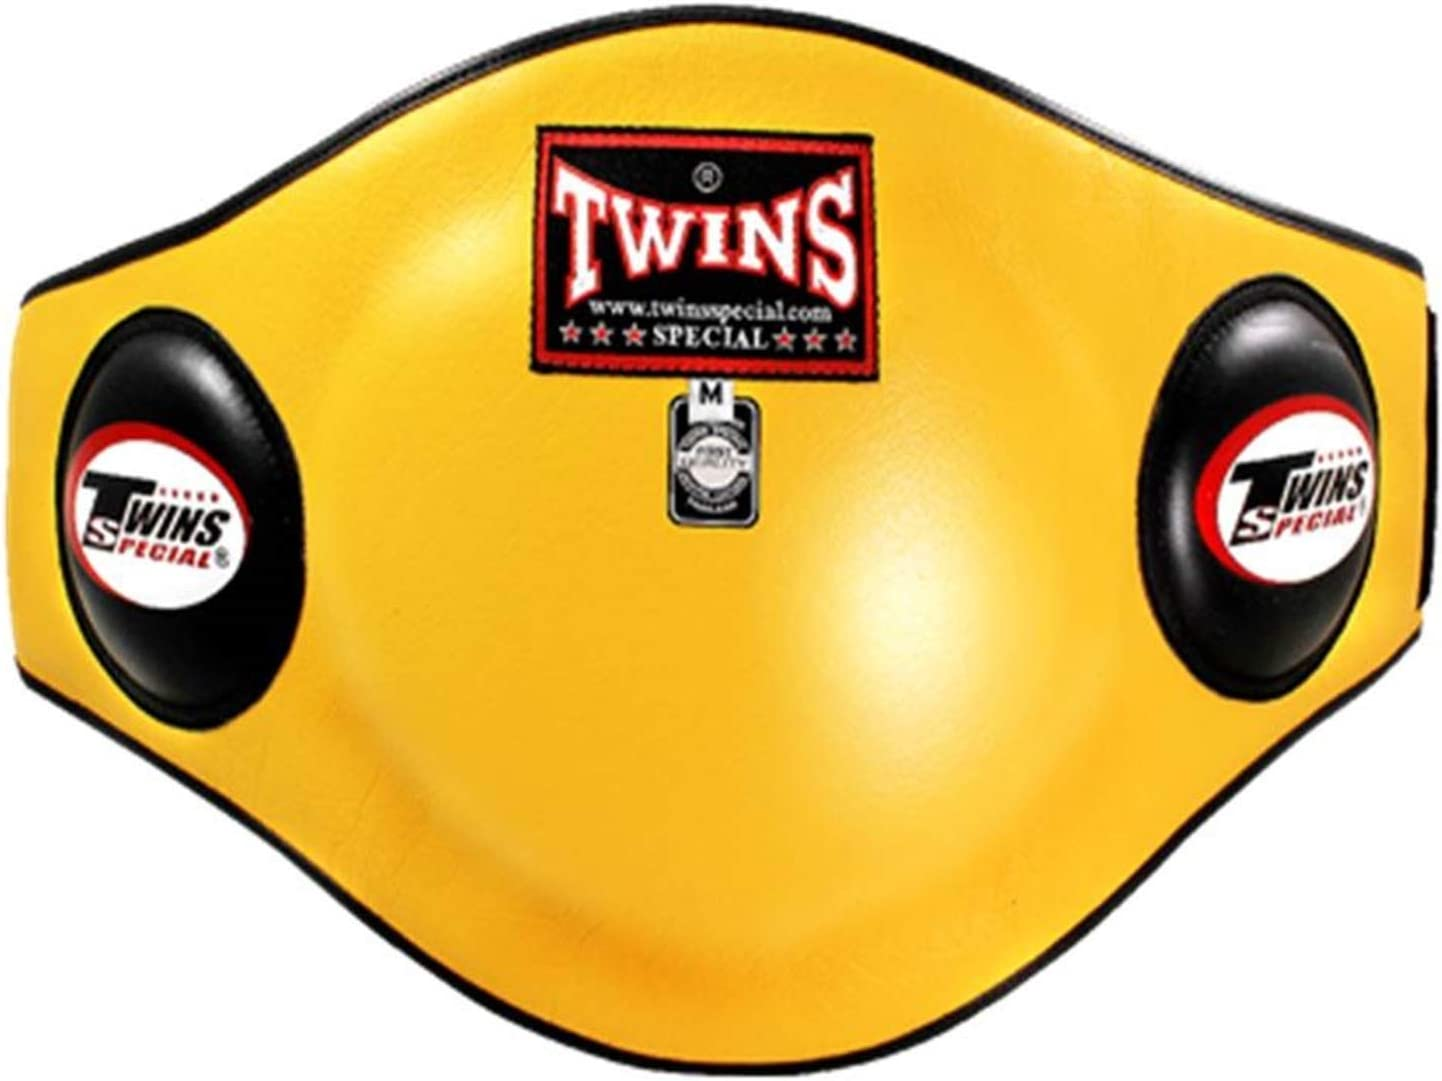 Twins Special Belly Pad Protector BEPL-2 Black S,M,L,XL Training MuayThai MMA K1